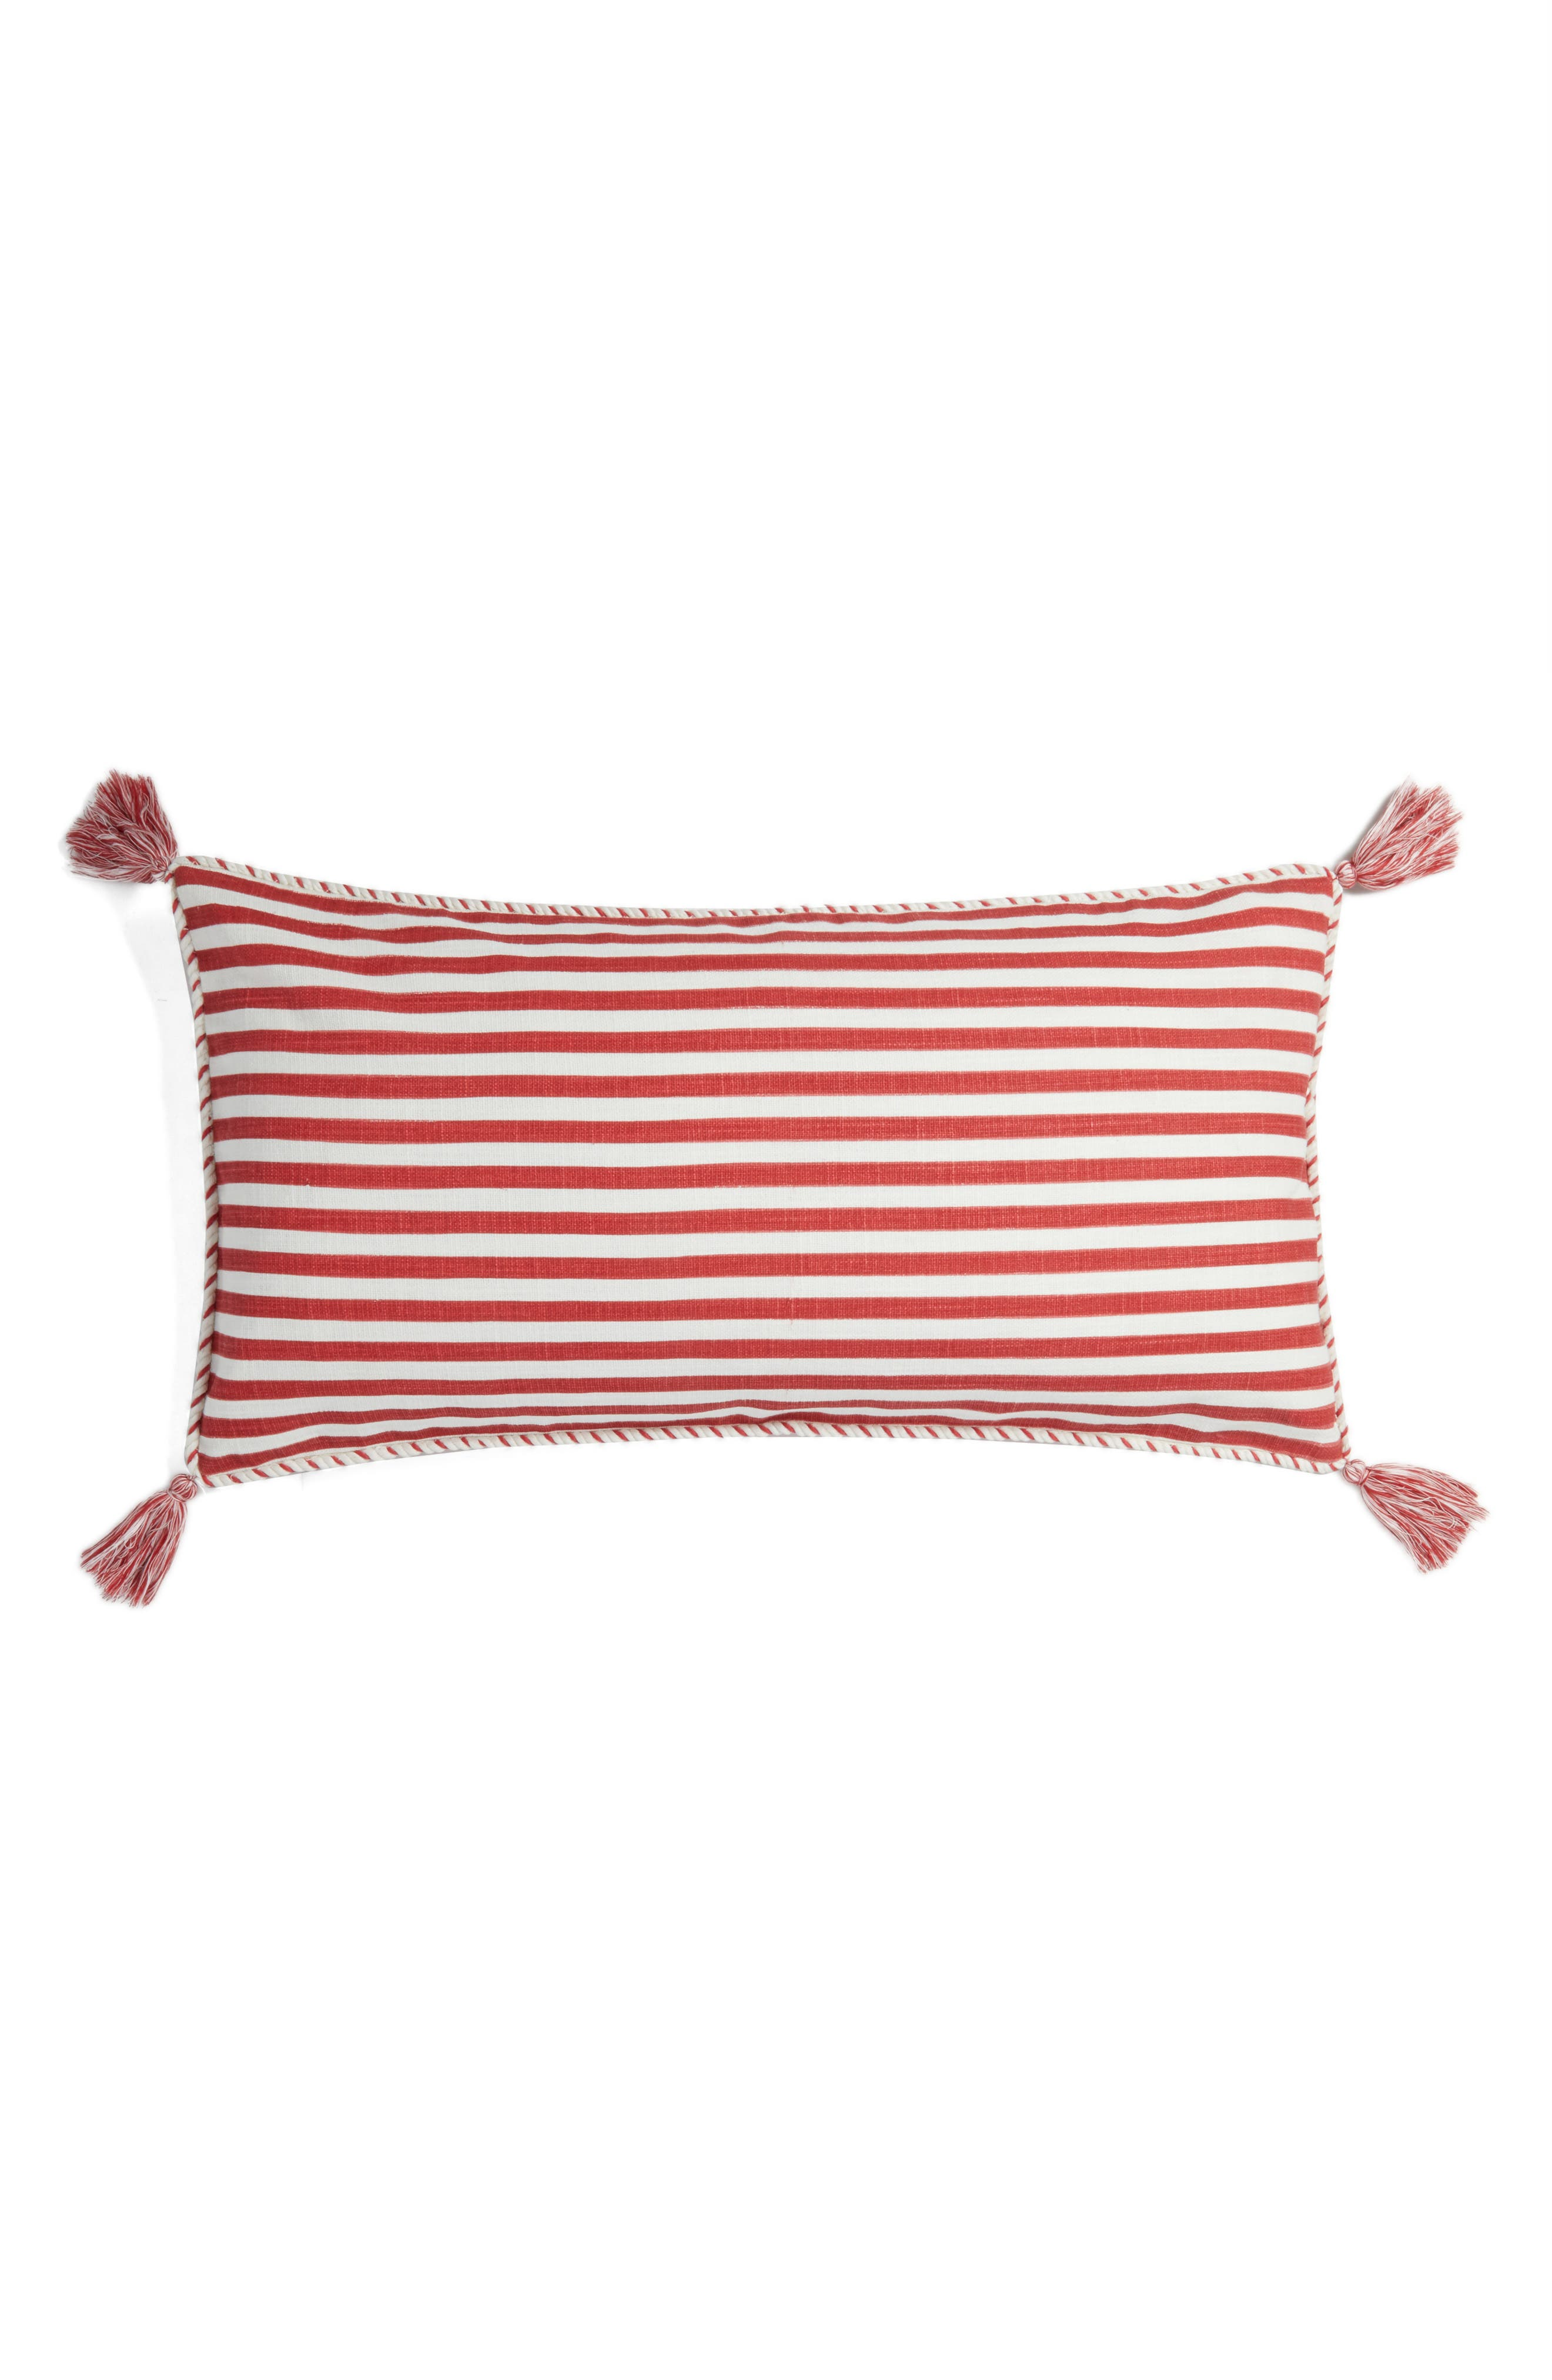 Stripe Tassel Accent Pillow,                             Main thumbnail 1, color,                             Red Cardinal